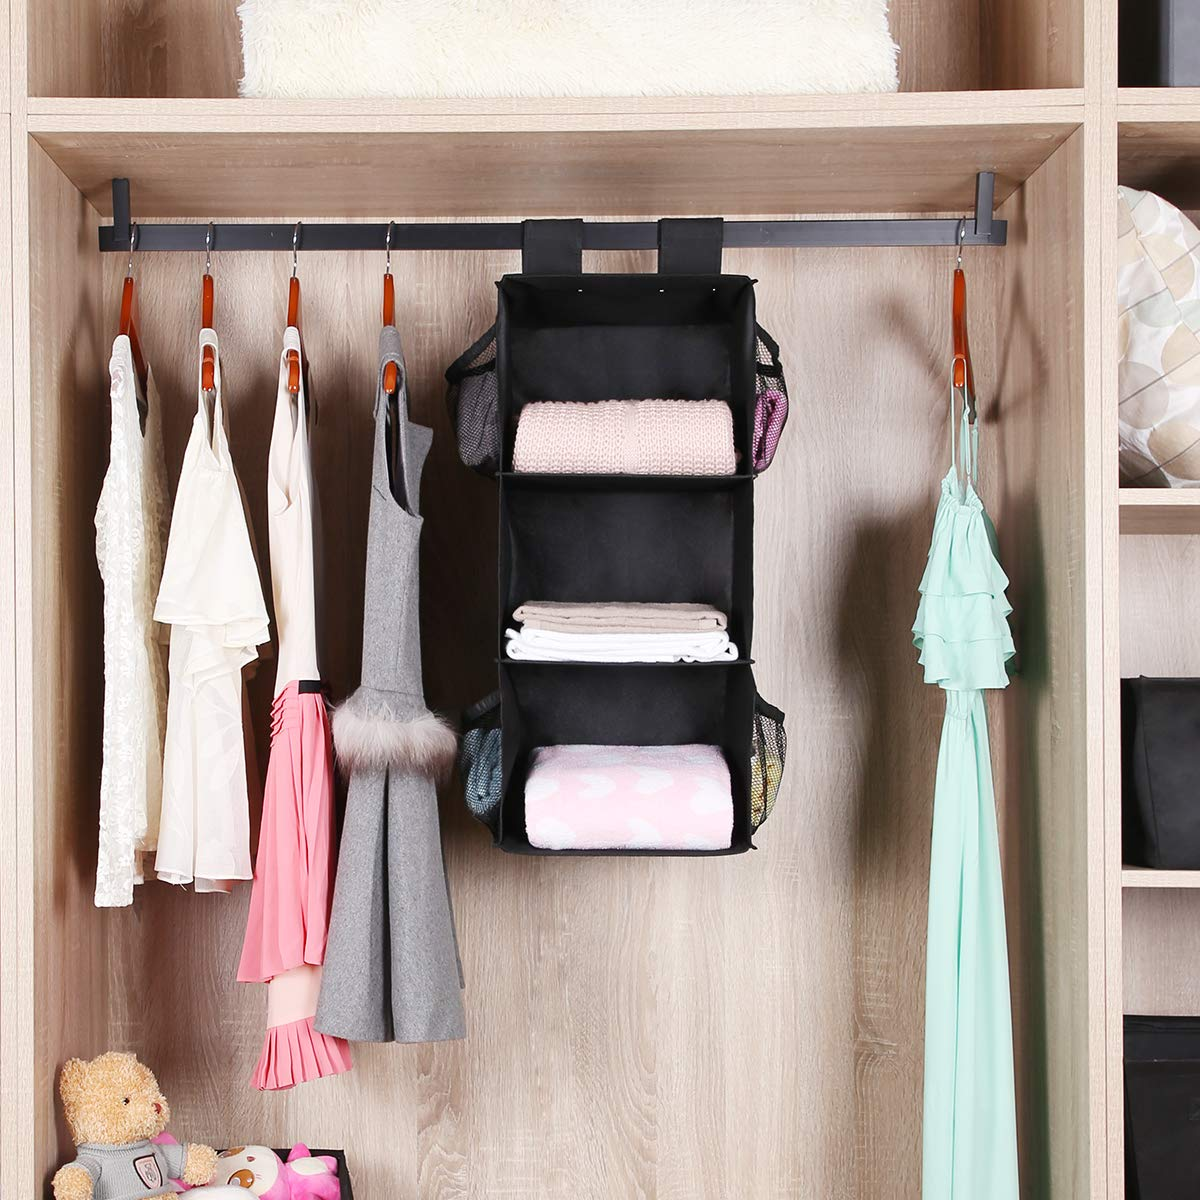 Space Saver 3-Shelves Closet Hanging Sweater Organizer MustQ Hanging Closet Organizer Black Hanging Storage Shelves with 2 Widen Straps